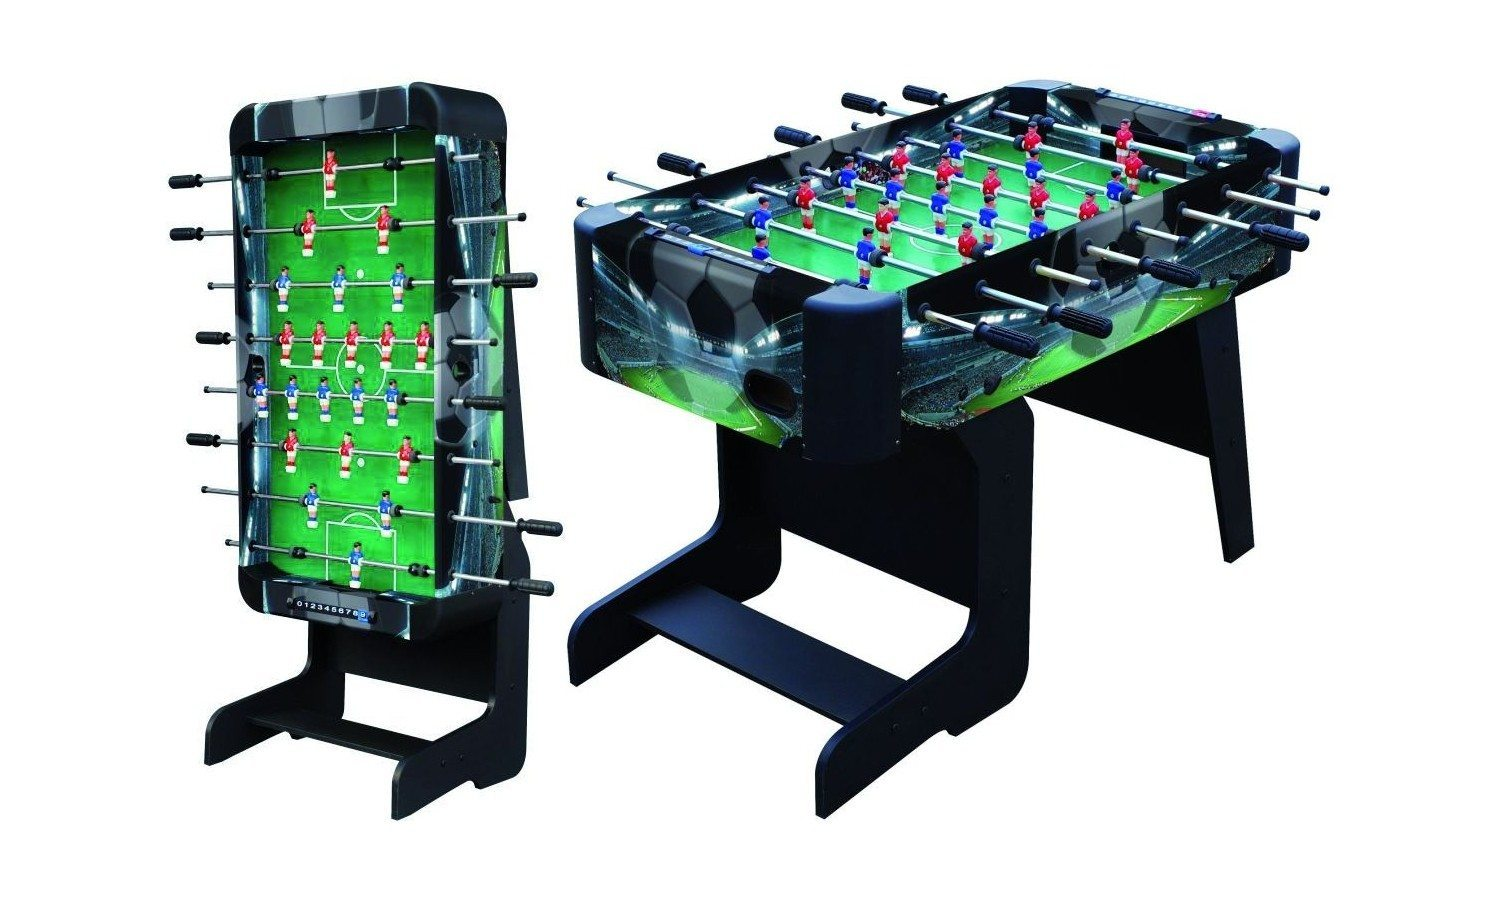 Table de babyfoot pliable